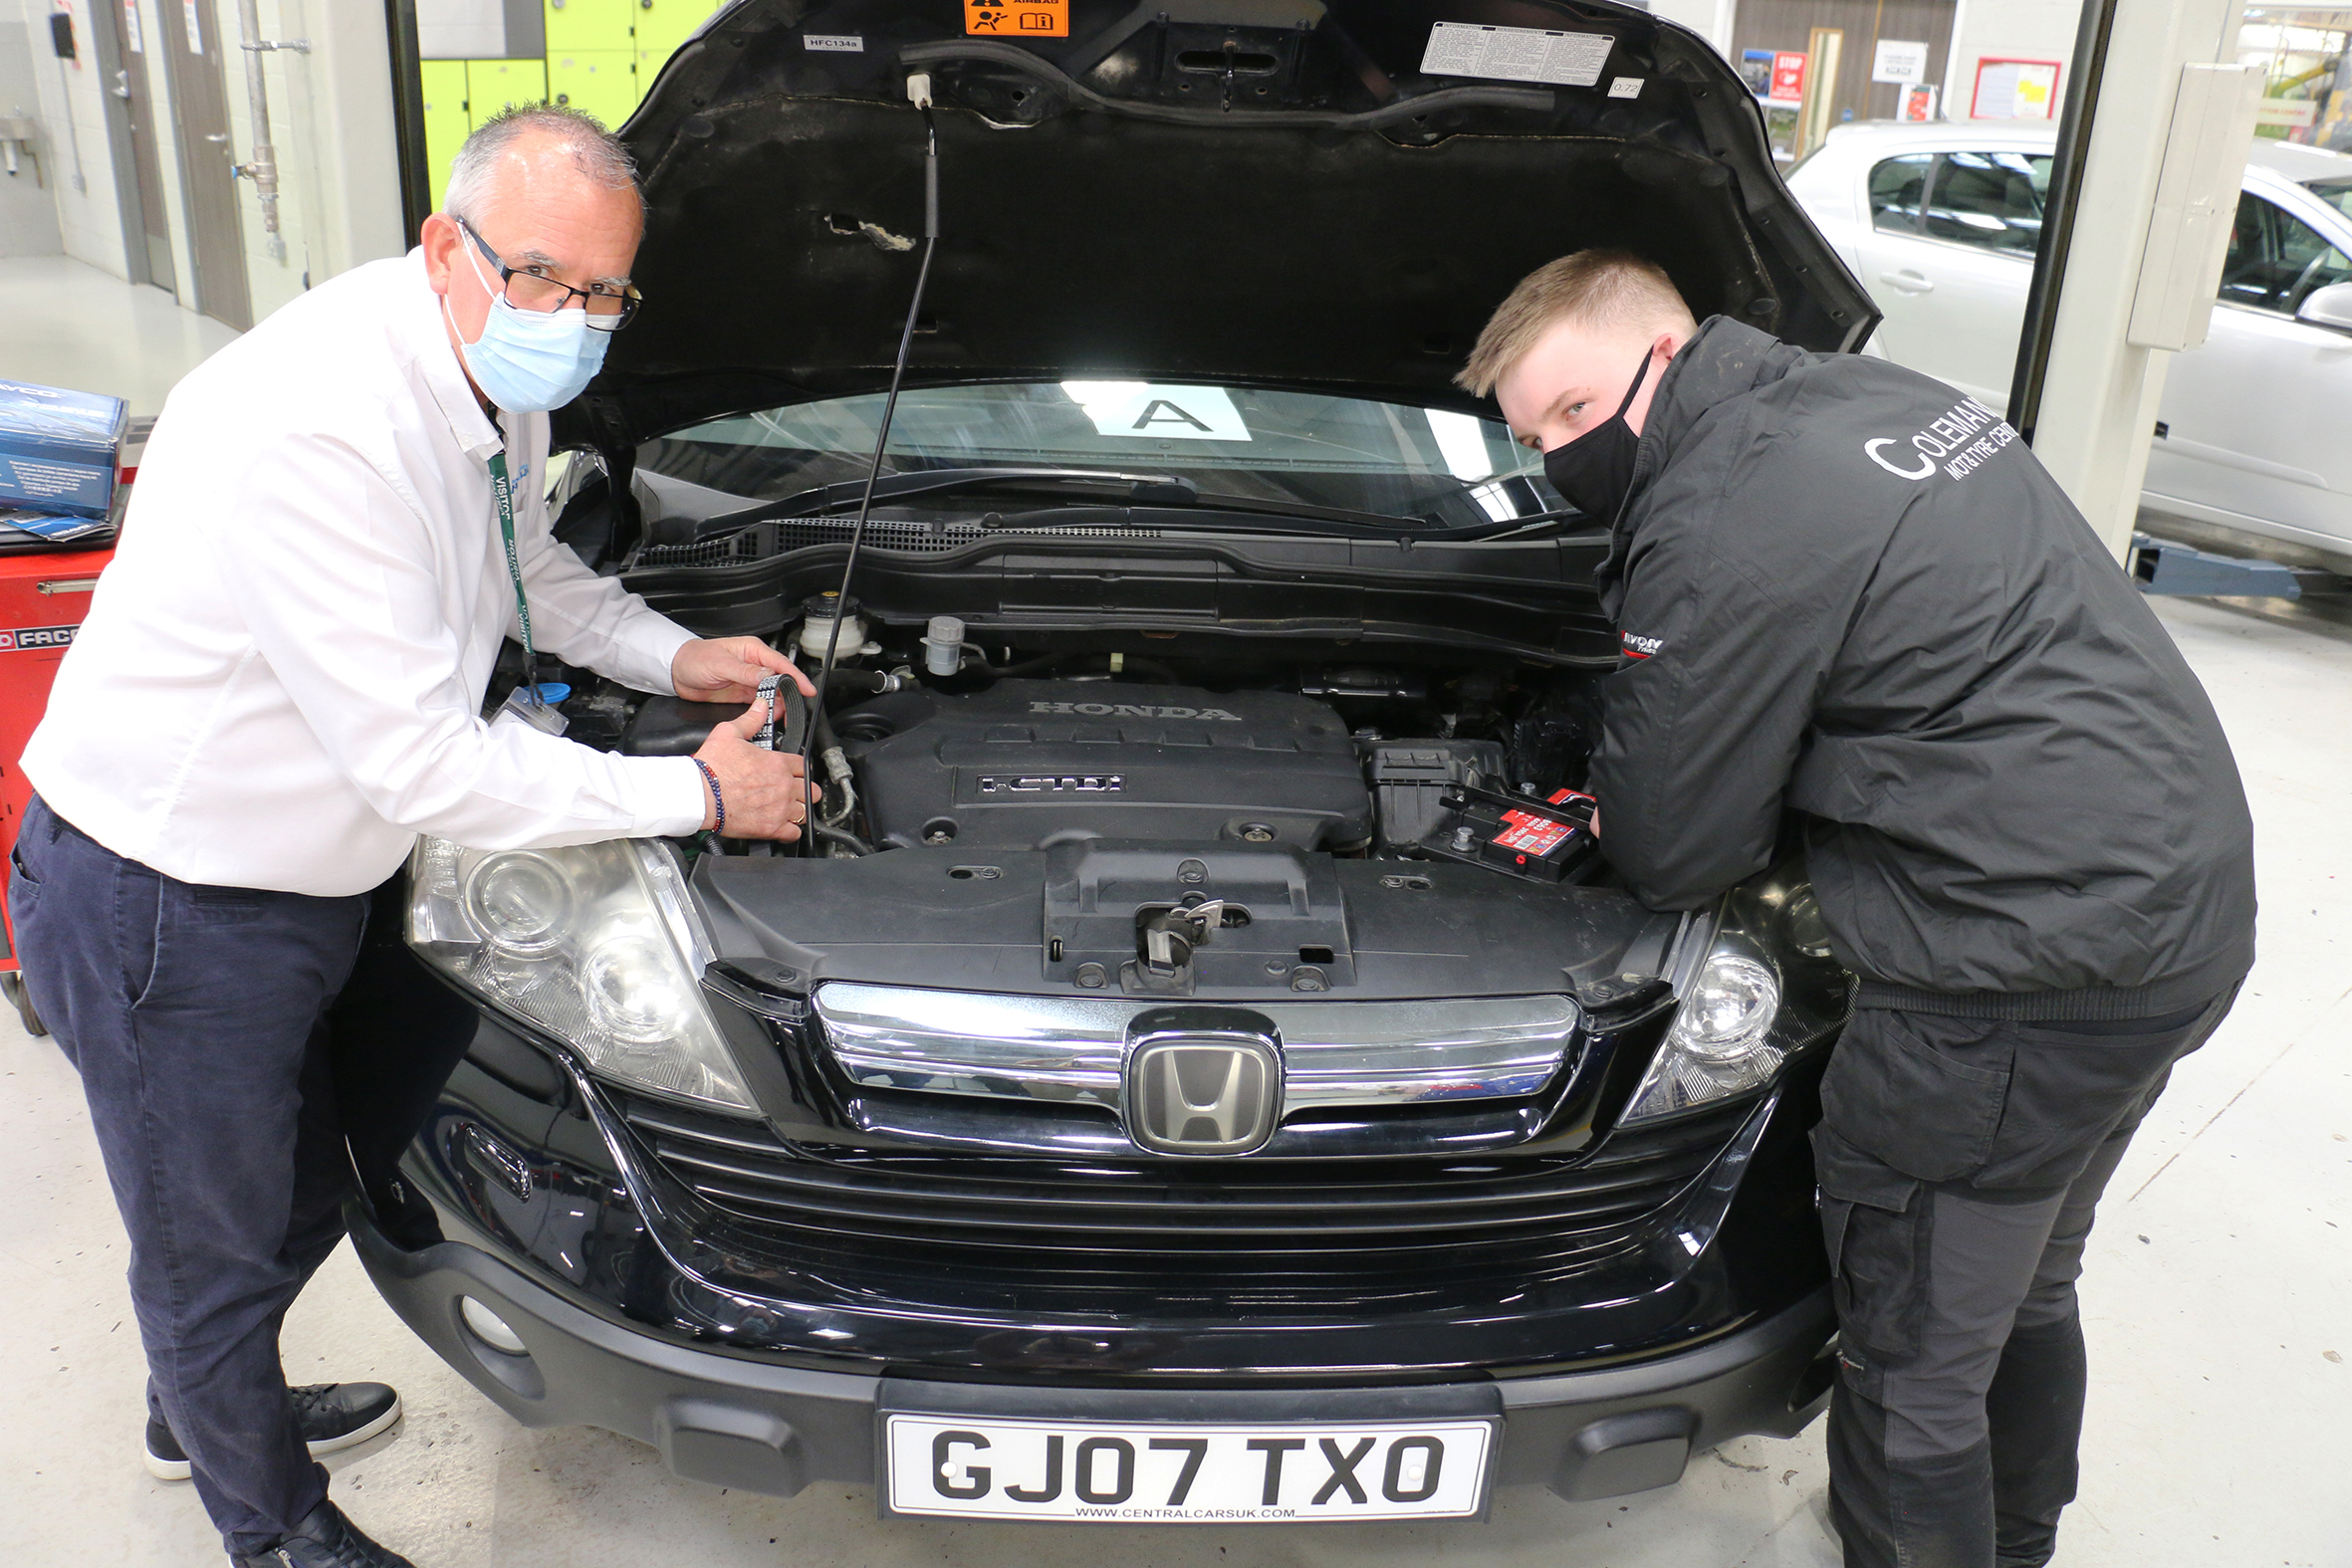 Trainee mechanics have great new skills under their belts